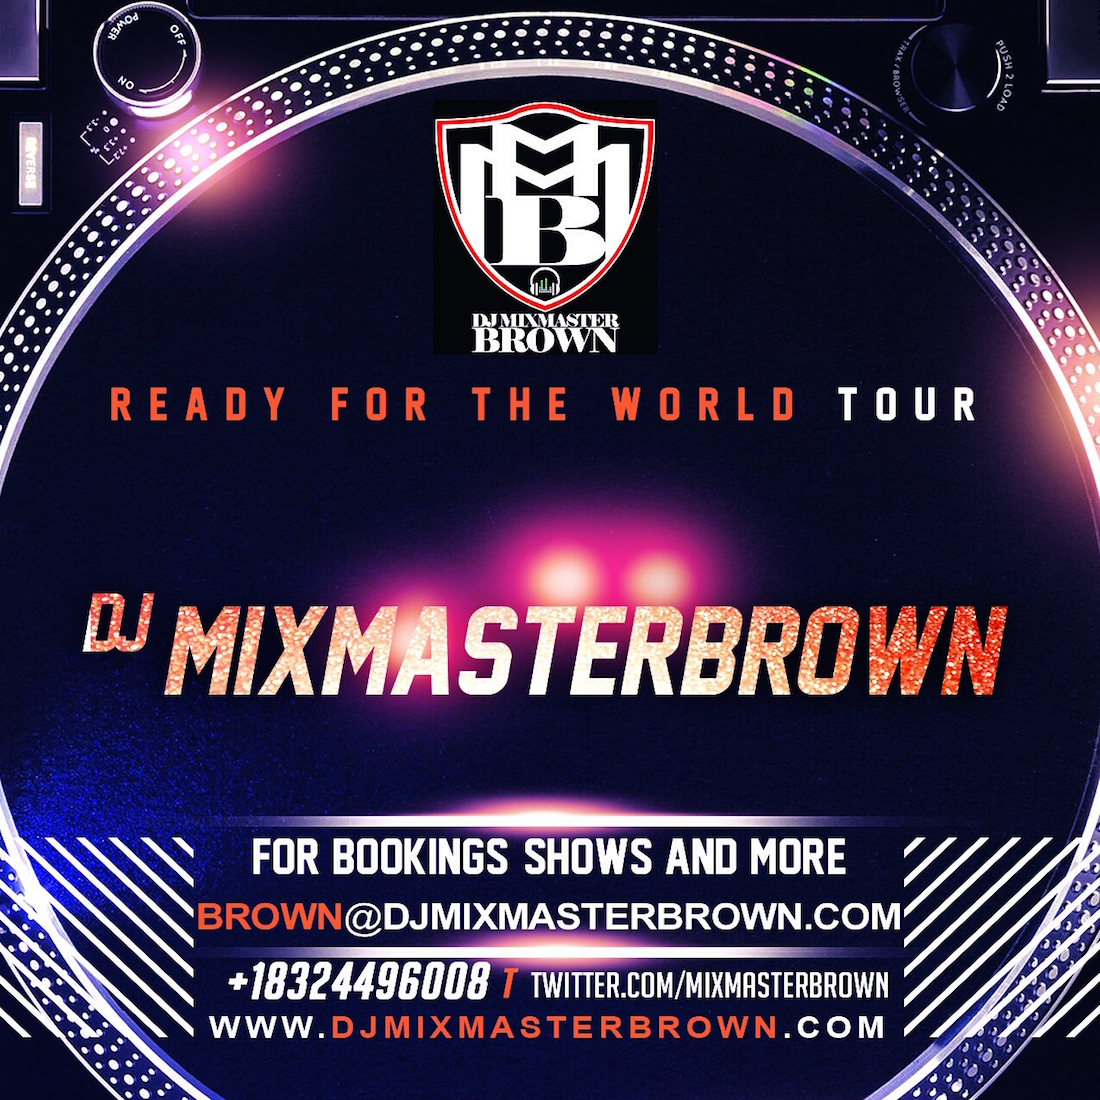 Dj Mixmasterbrown Ready For The World Tour